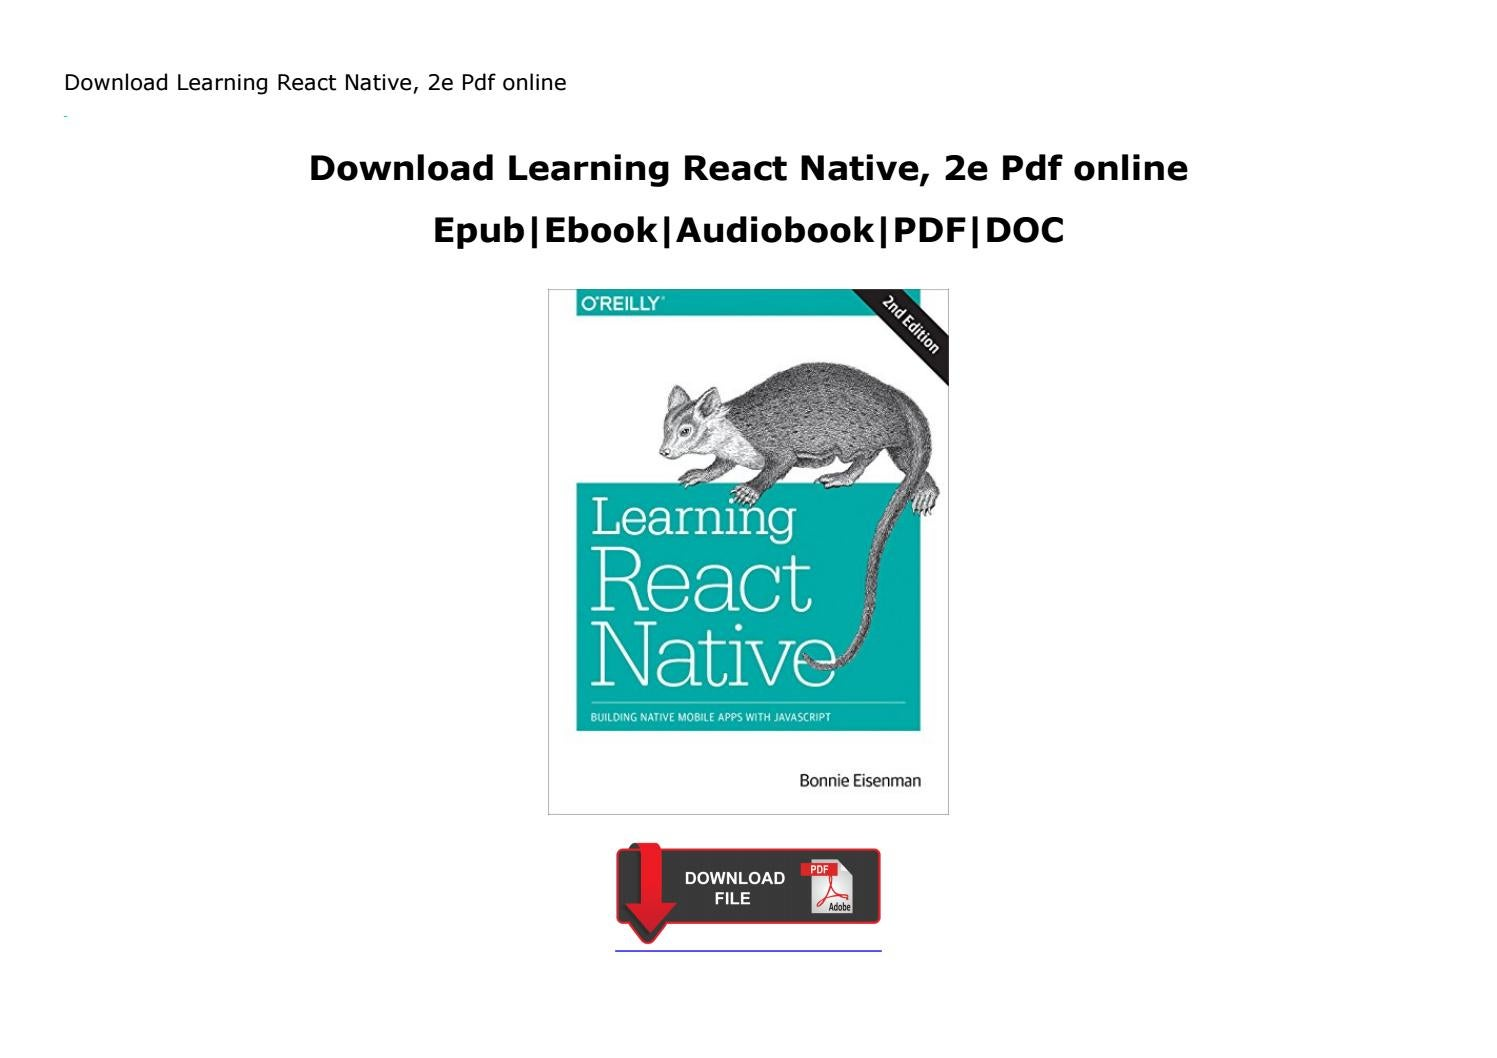 Download Learning React Native, 2e Pdf online by